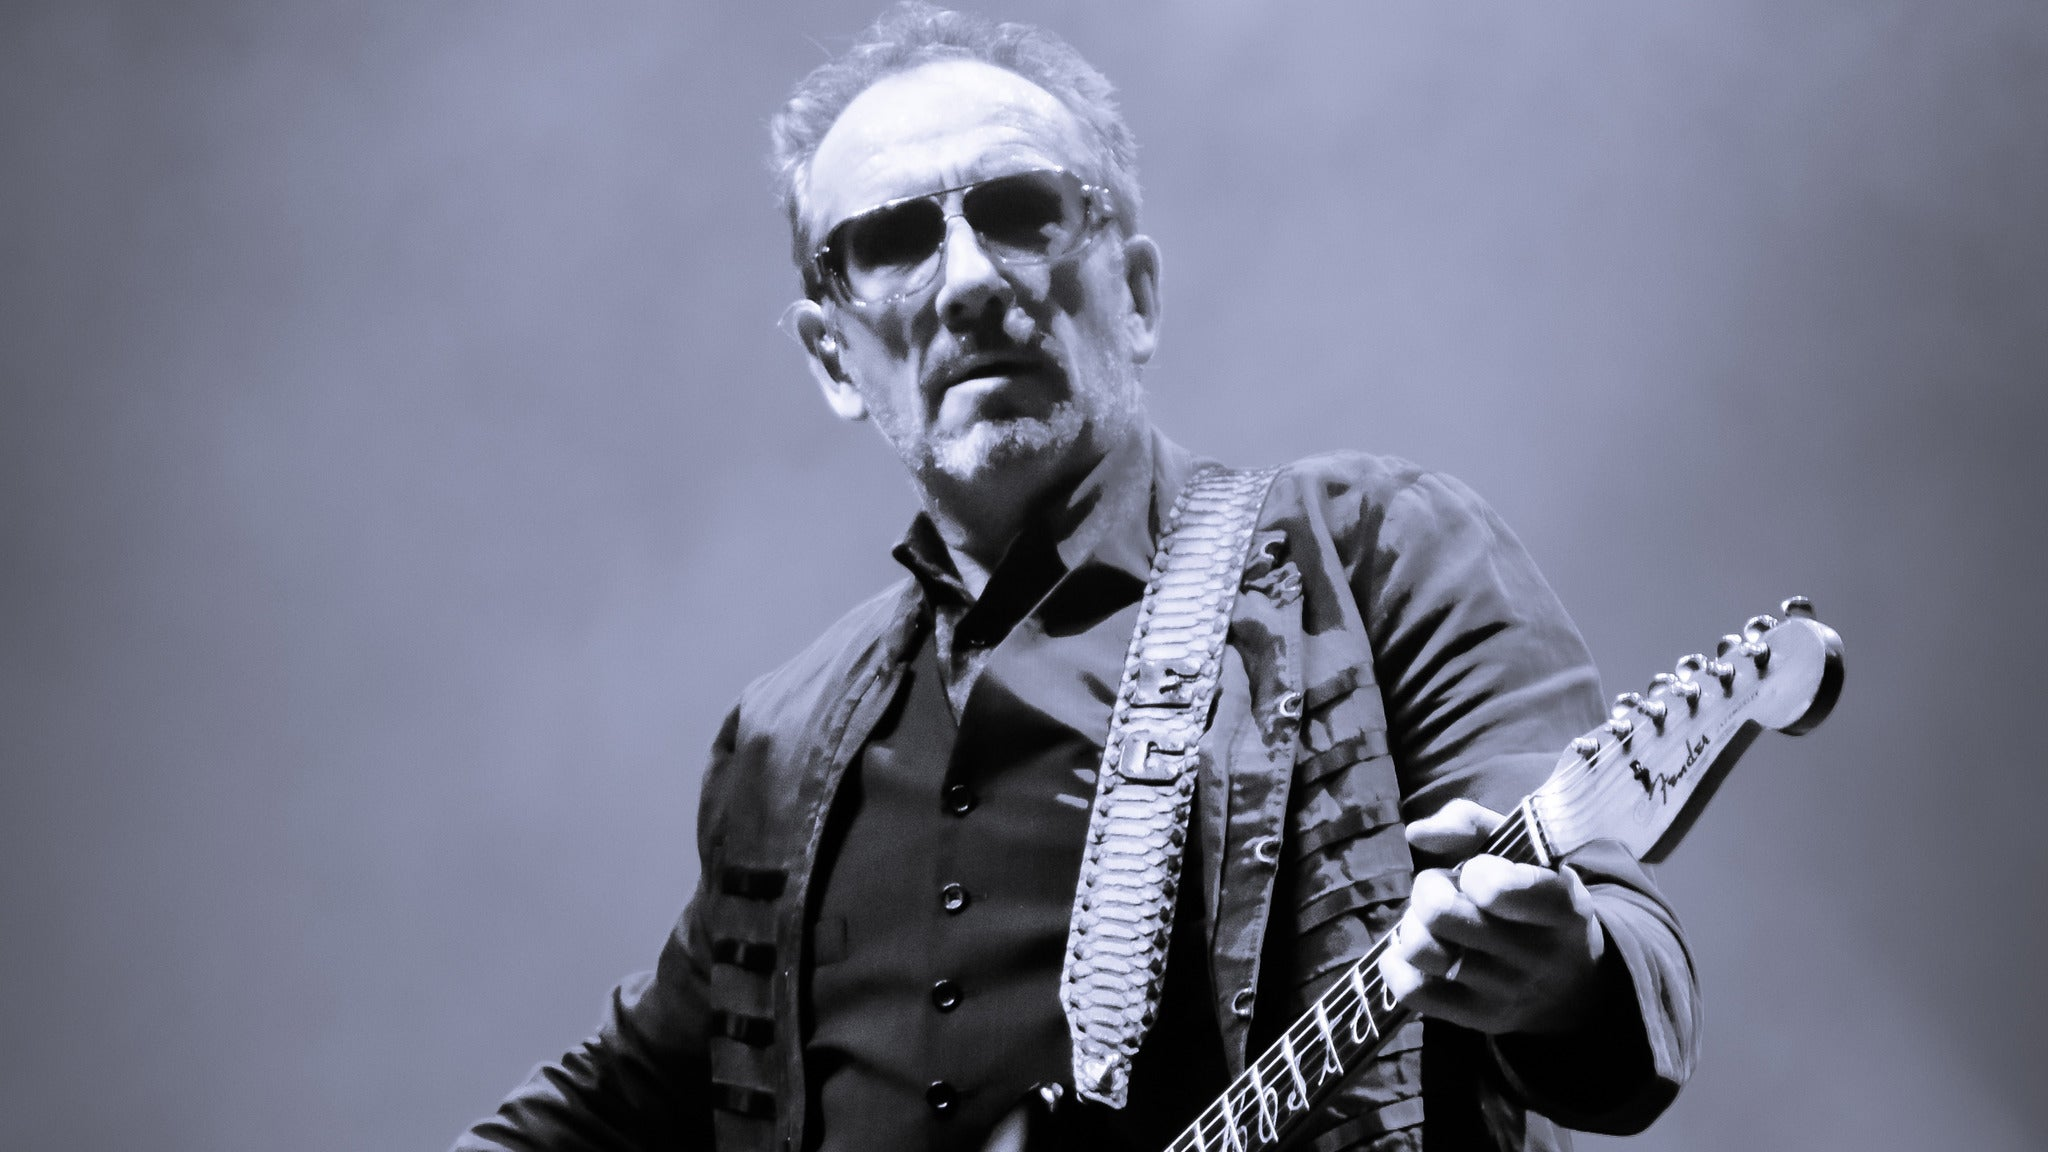 Elvis Costello & the Imposters at The Masonic